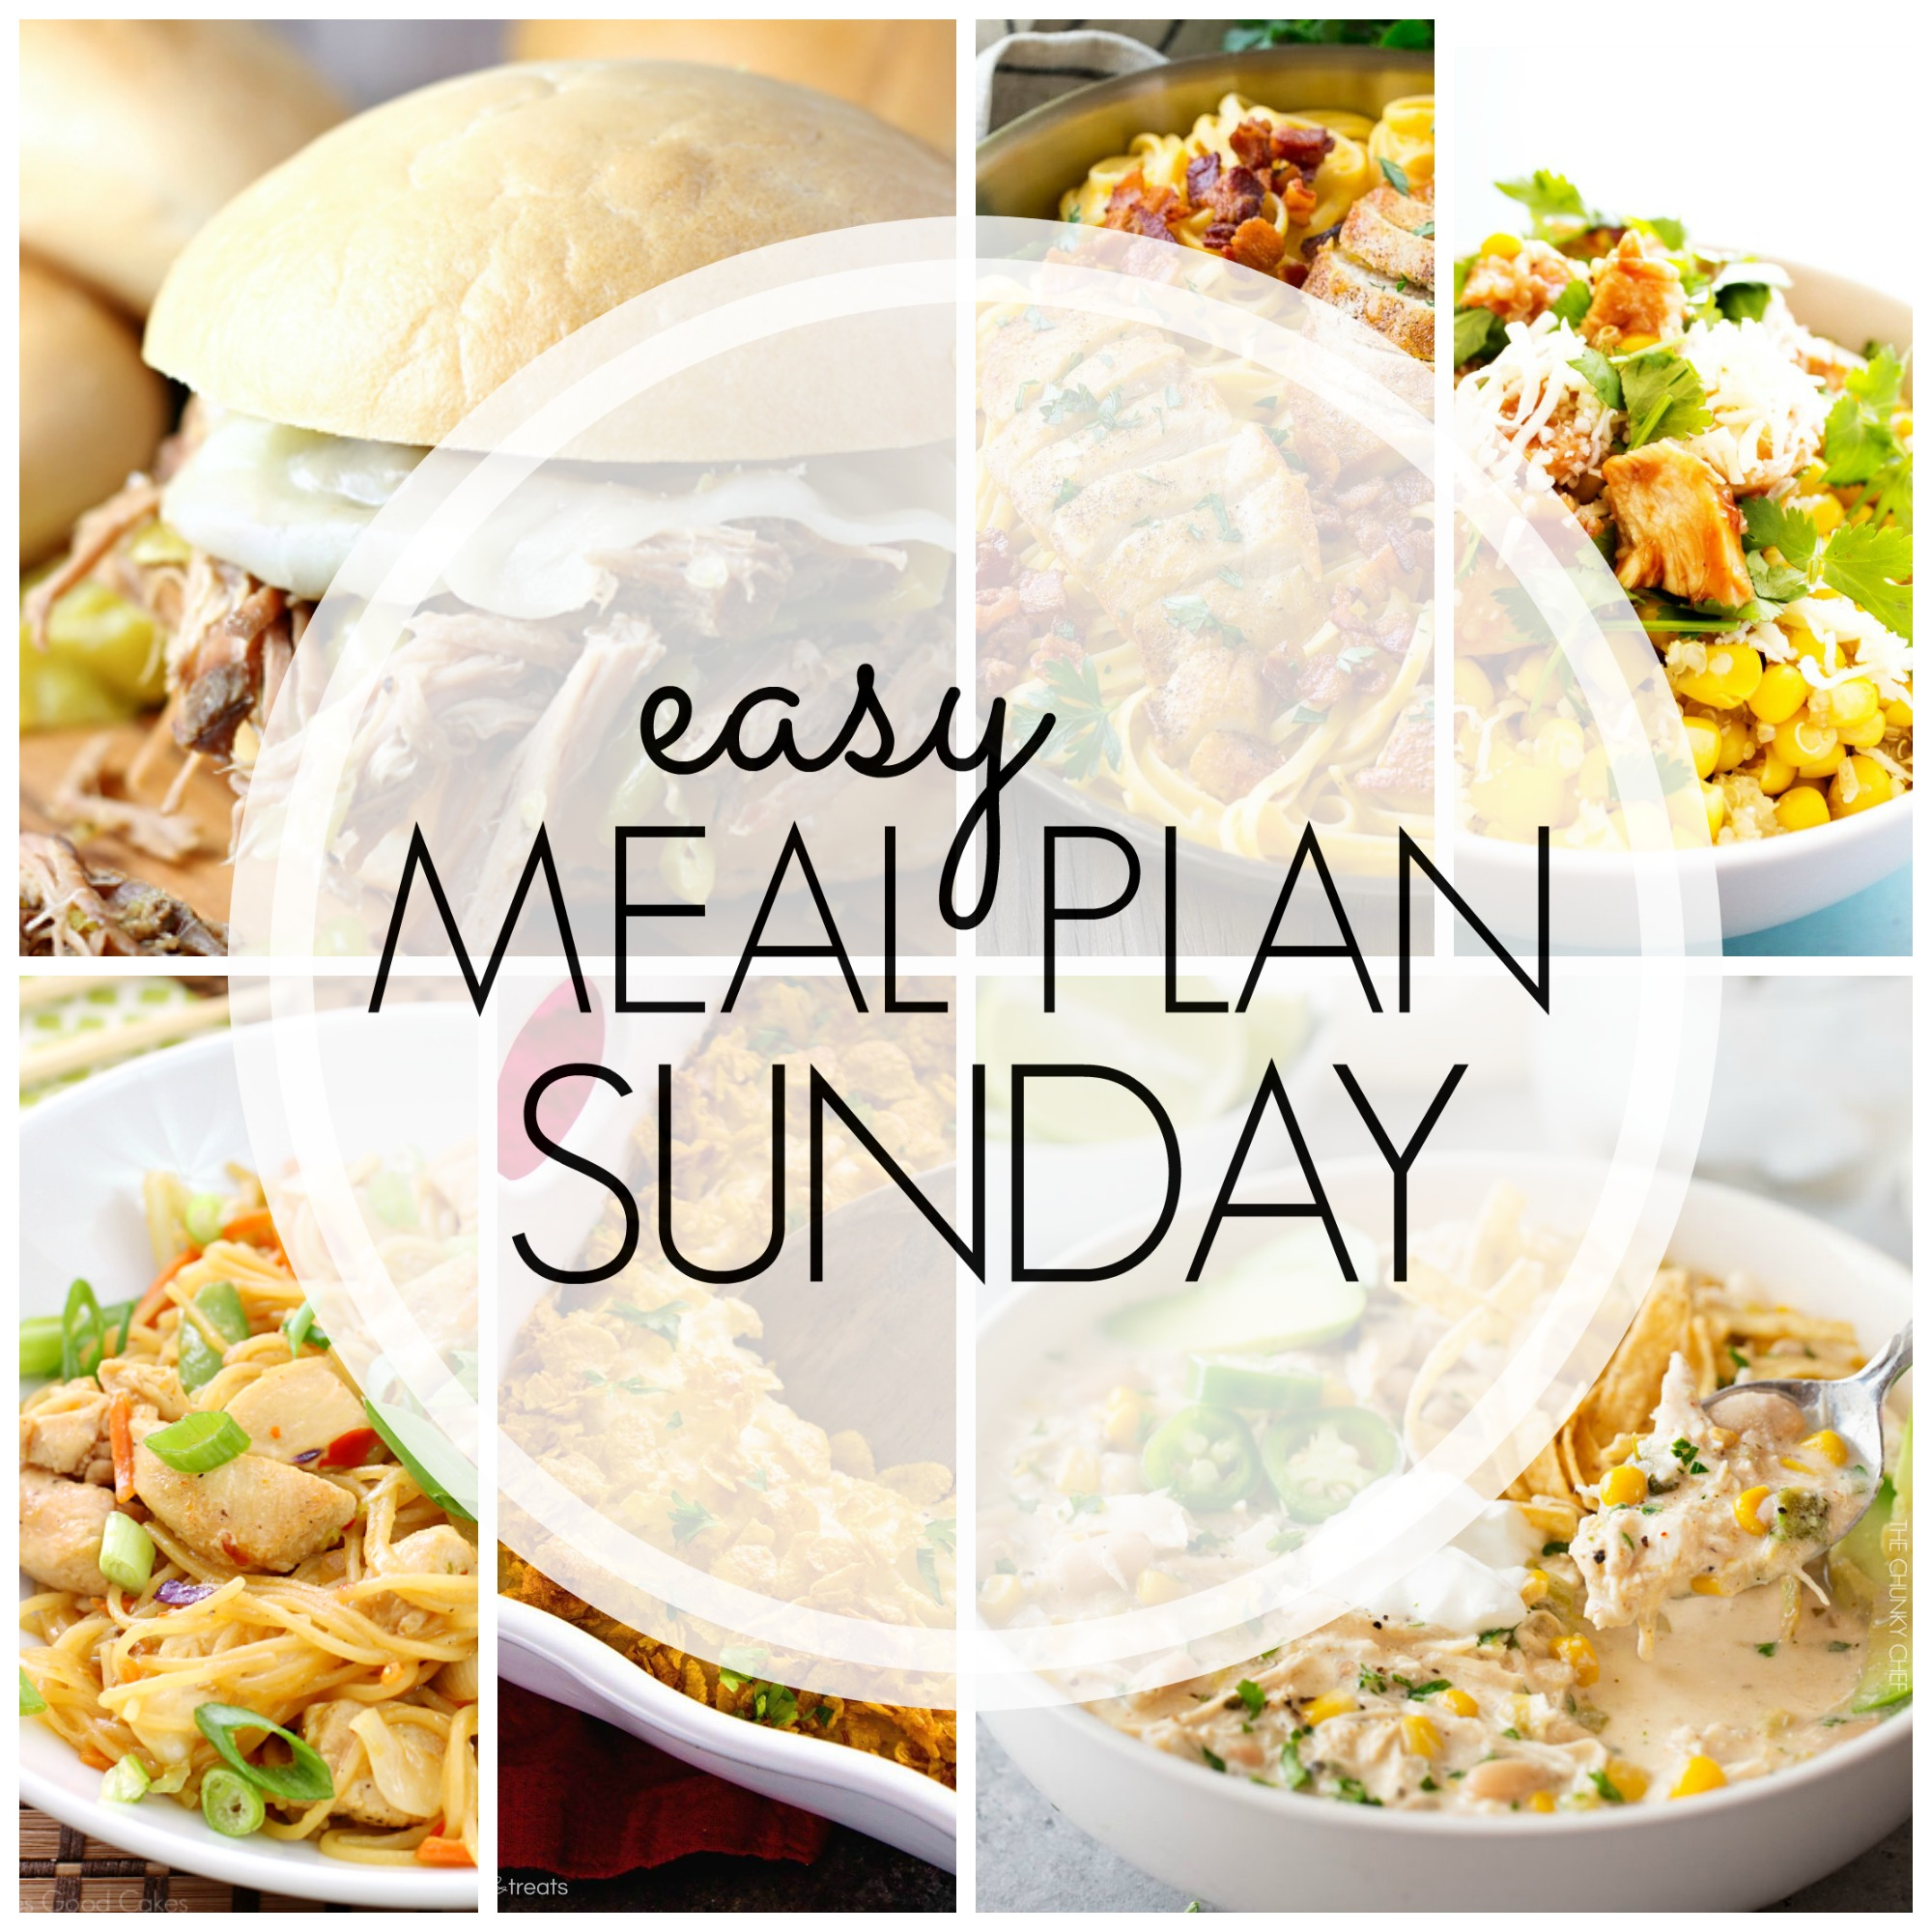 EASY MEAL PLAN – Week 87 - 7 delicious dinners and 2 desserts!